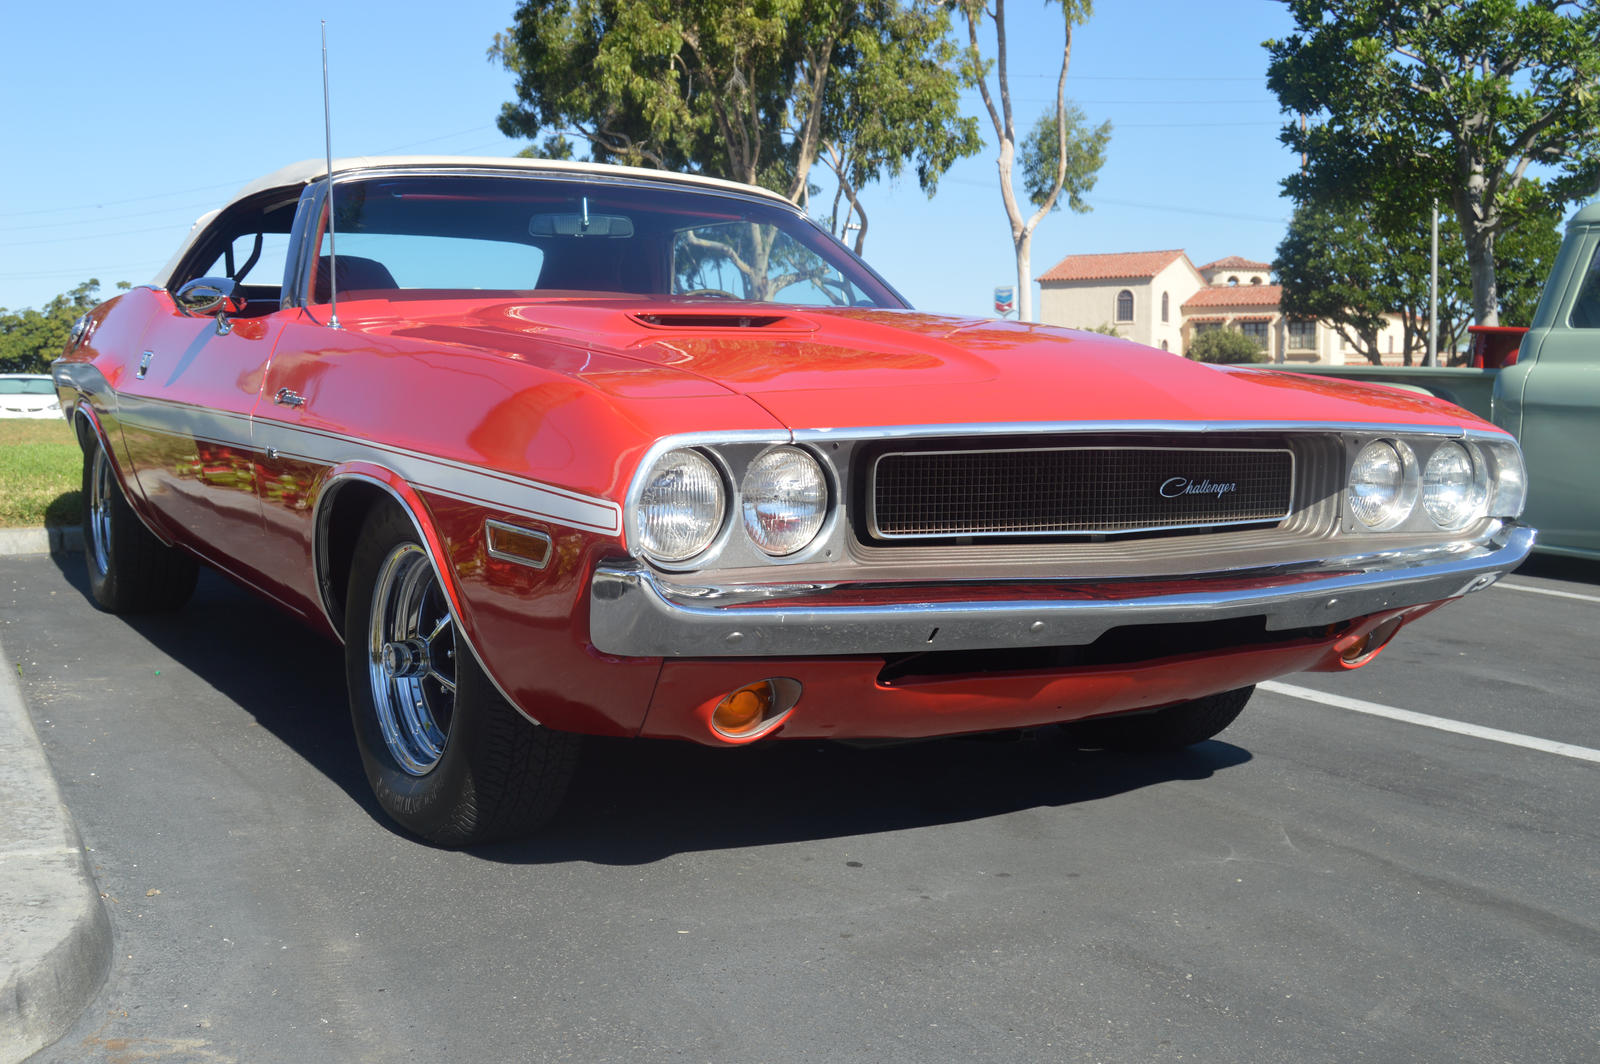 1970 dodge challenger convertible x by brooklyn47 on deviantart. Black Bedroom Furniture Sets. Home Design Ideas